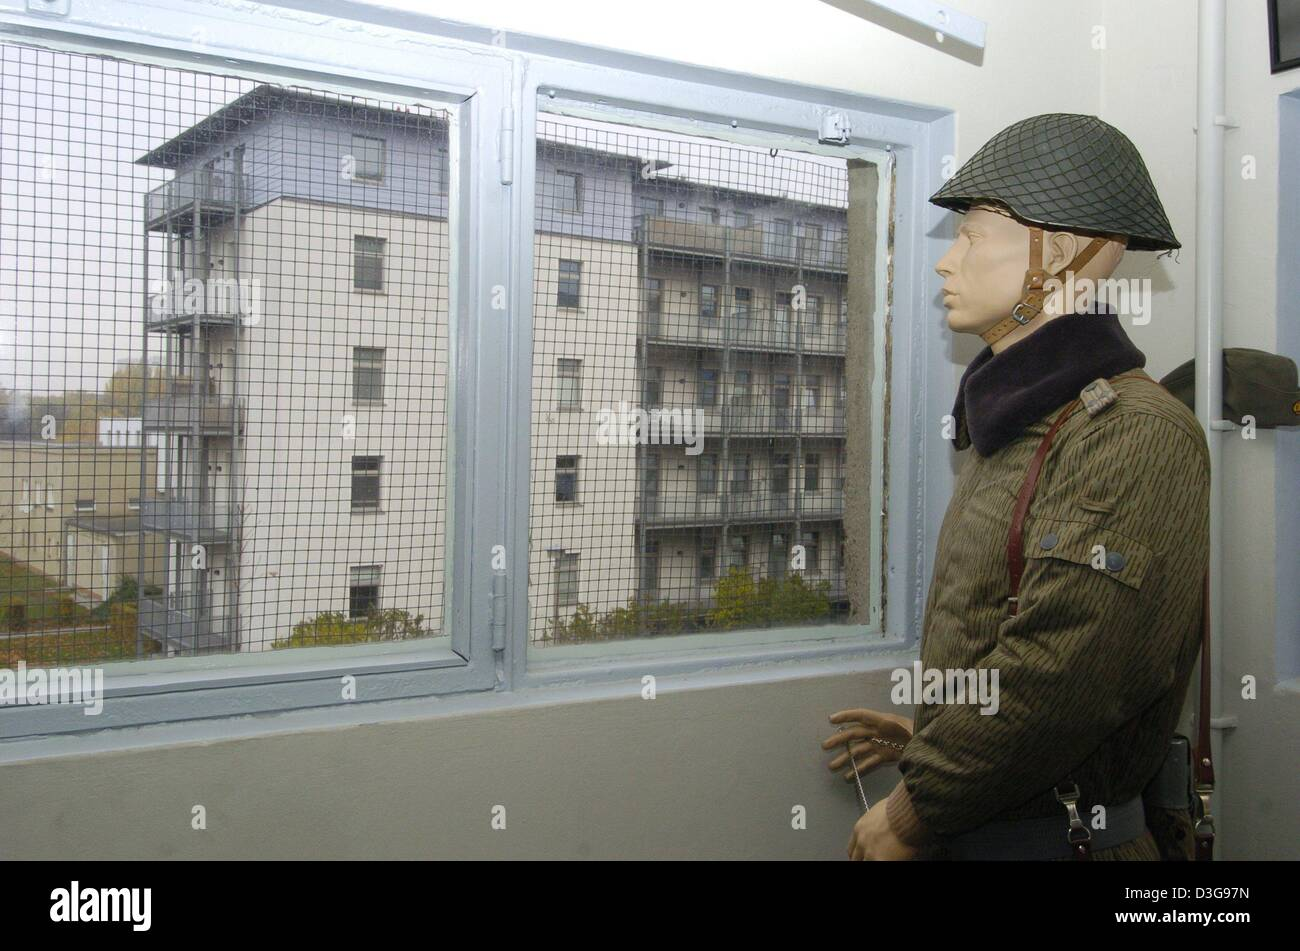 dpa) - A puppet in GDR uniform stands next to a window of the Stock